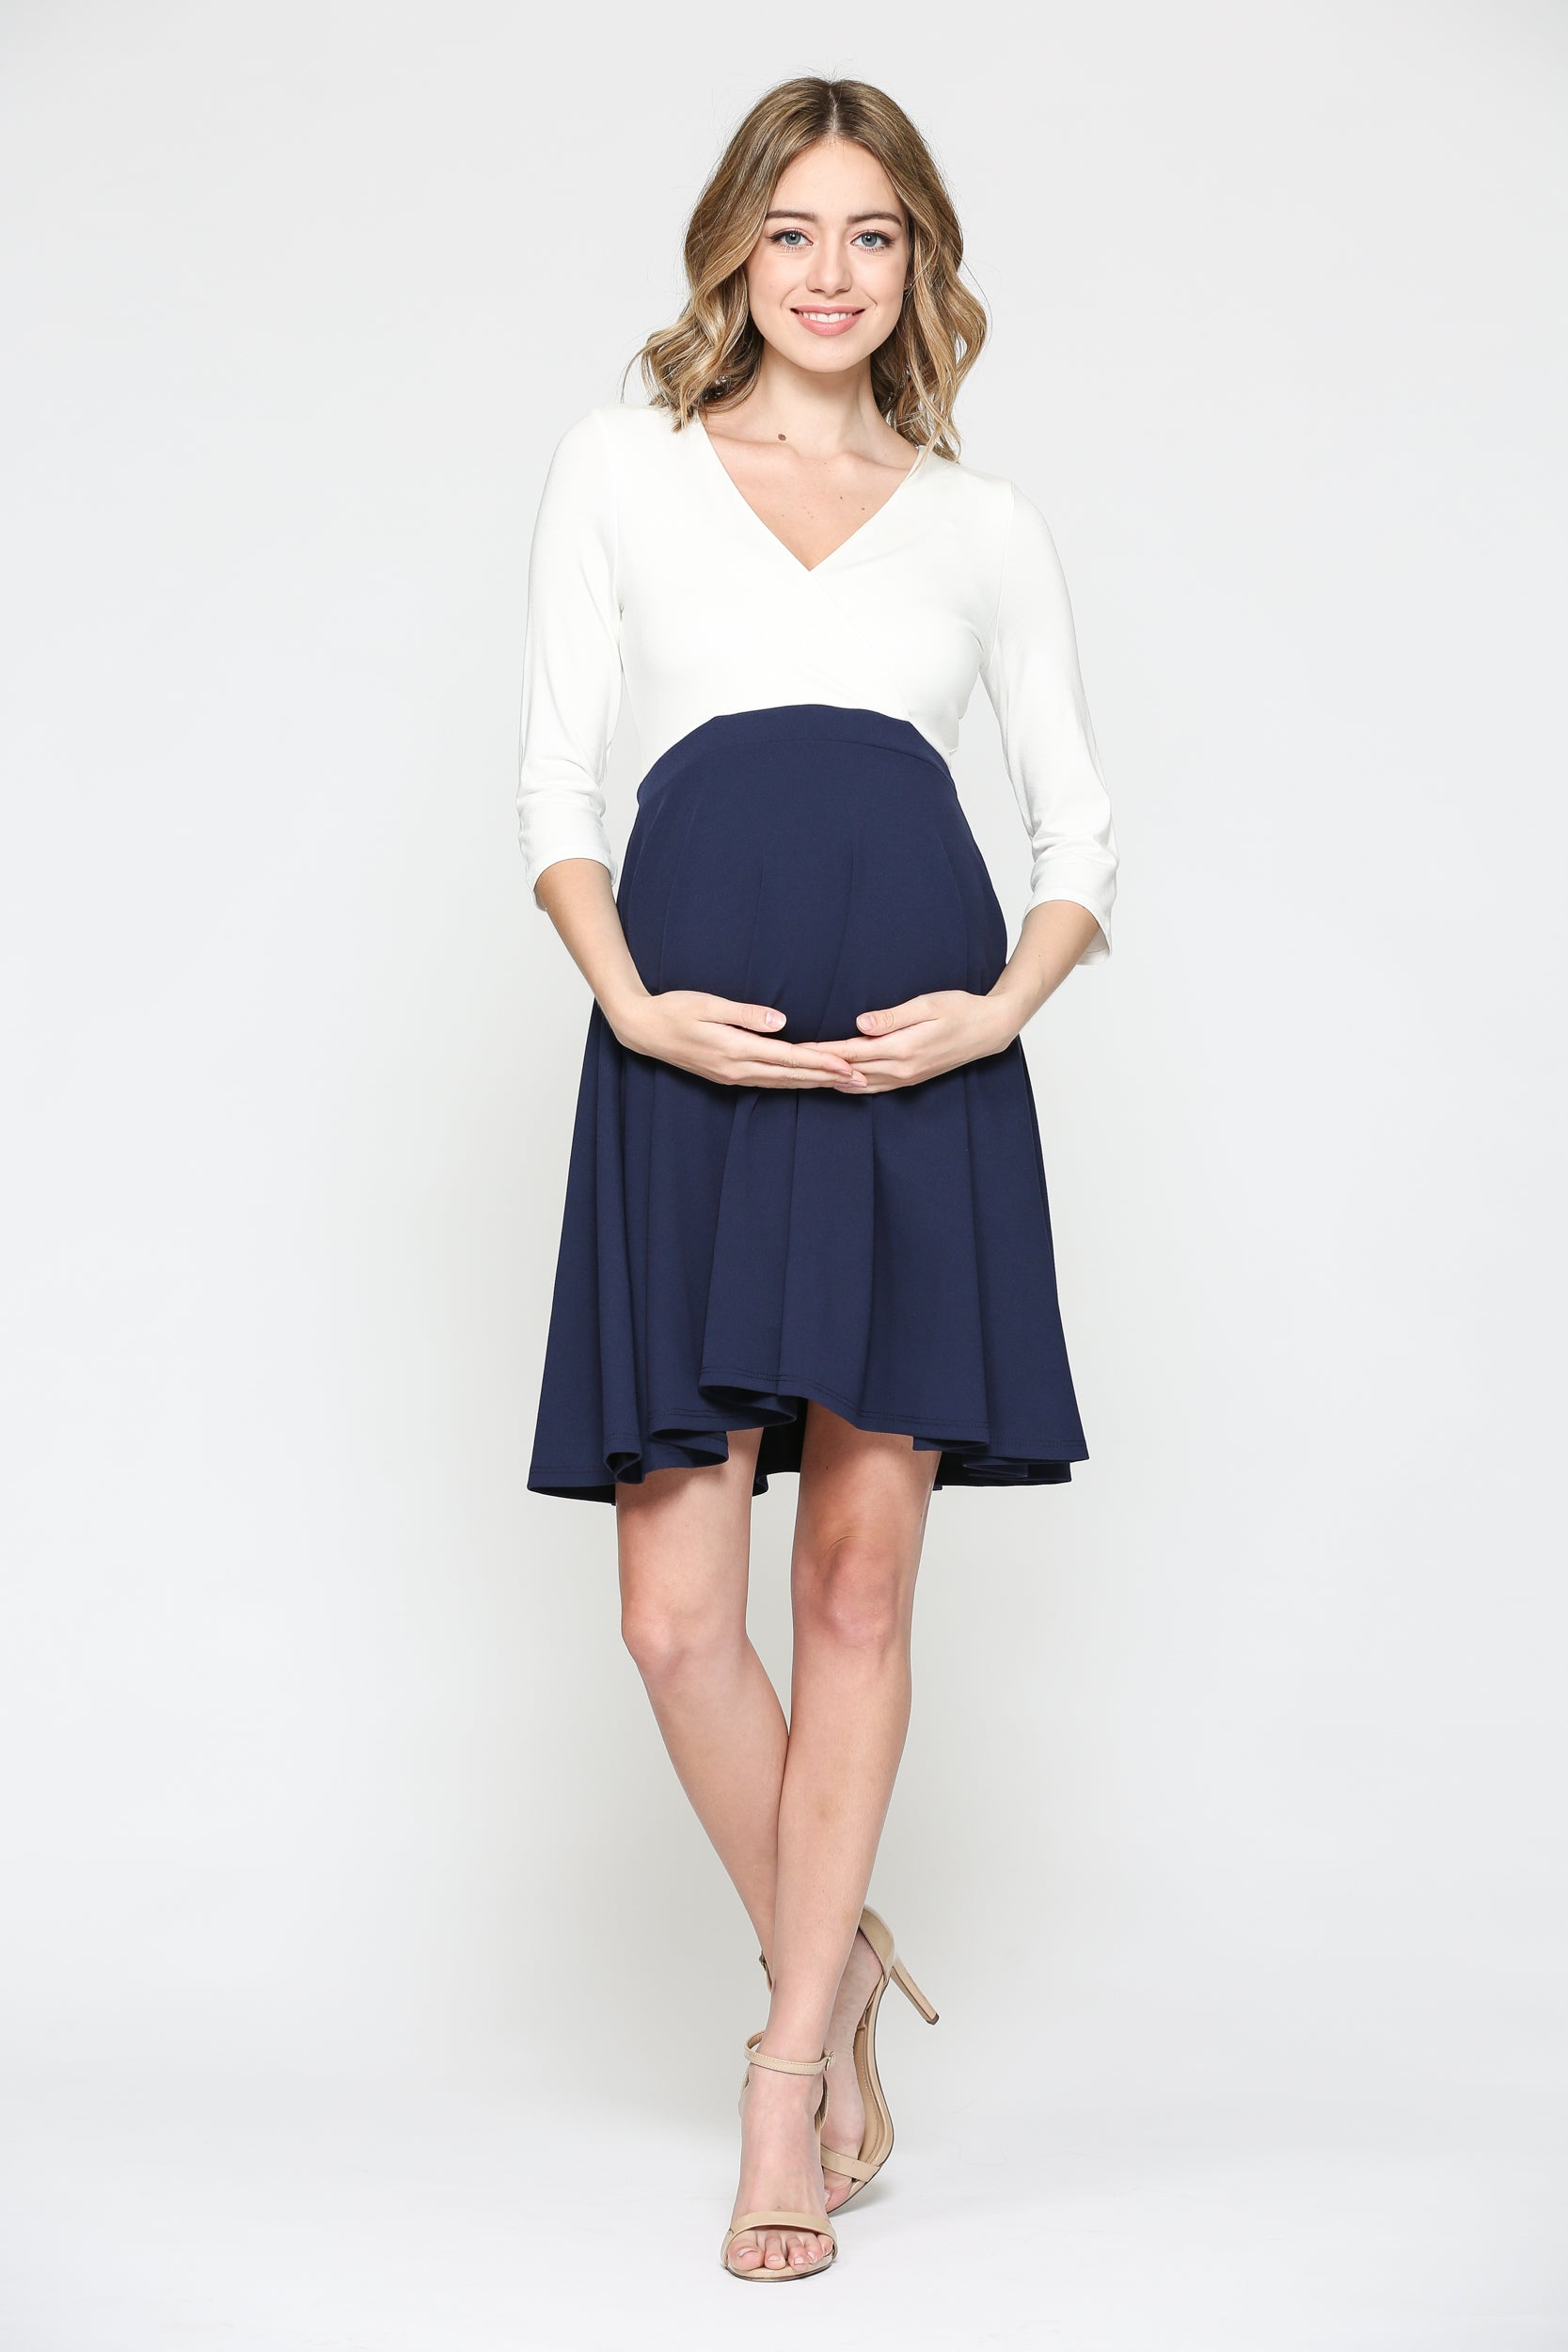 Surplice Top Maternity/Nursing Dress